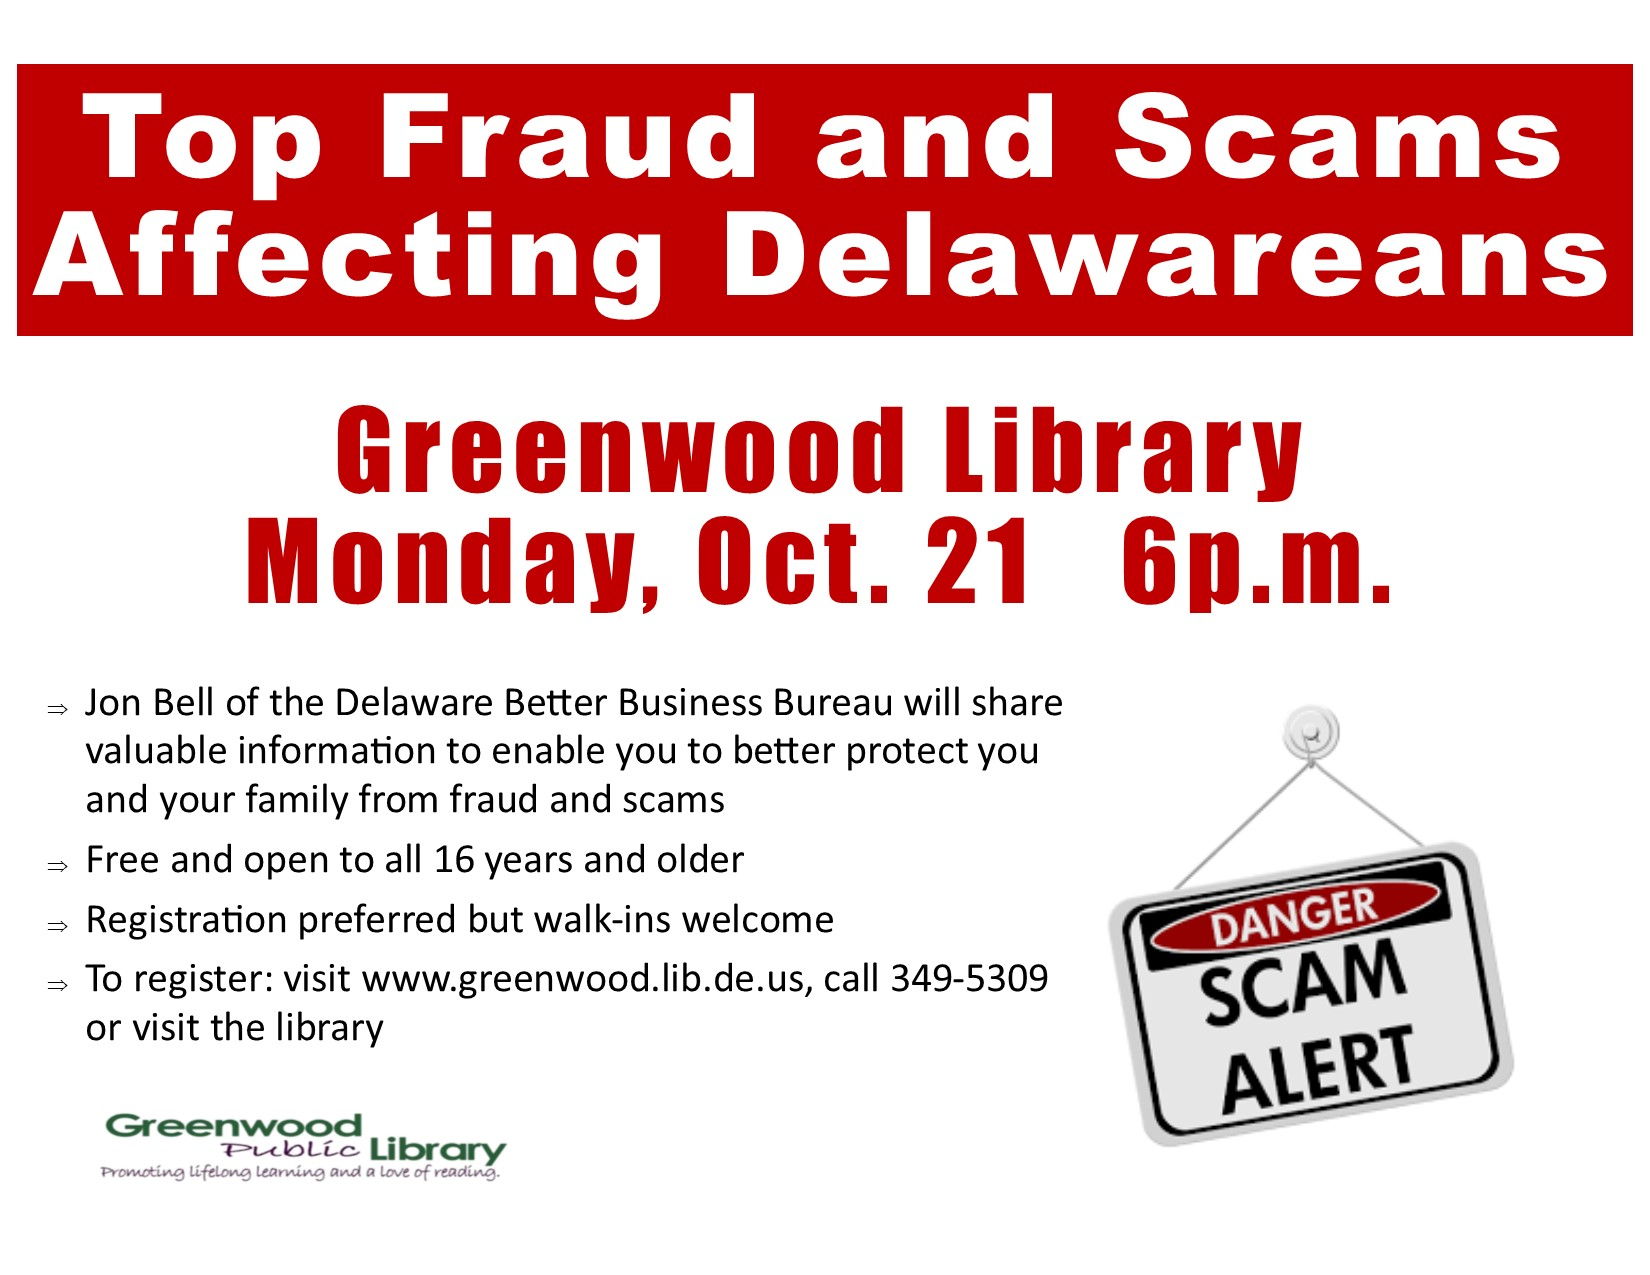 Top Frauds and Scams Affecting Delawareans